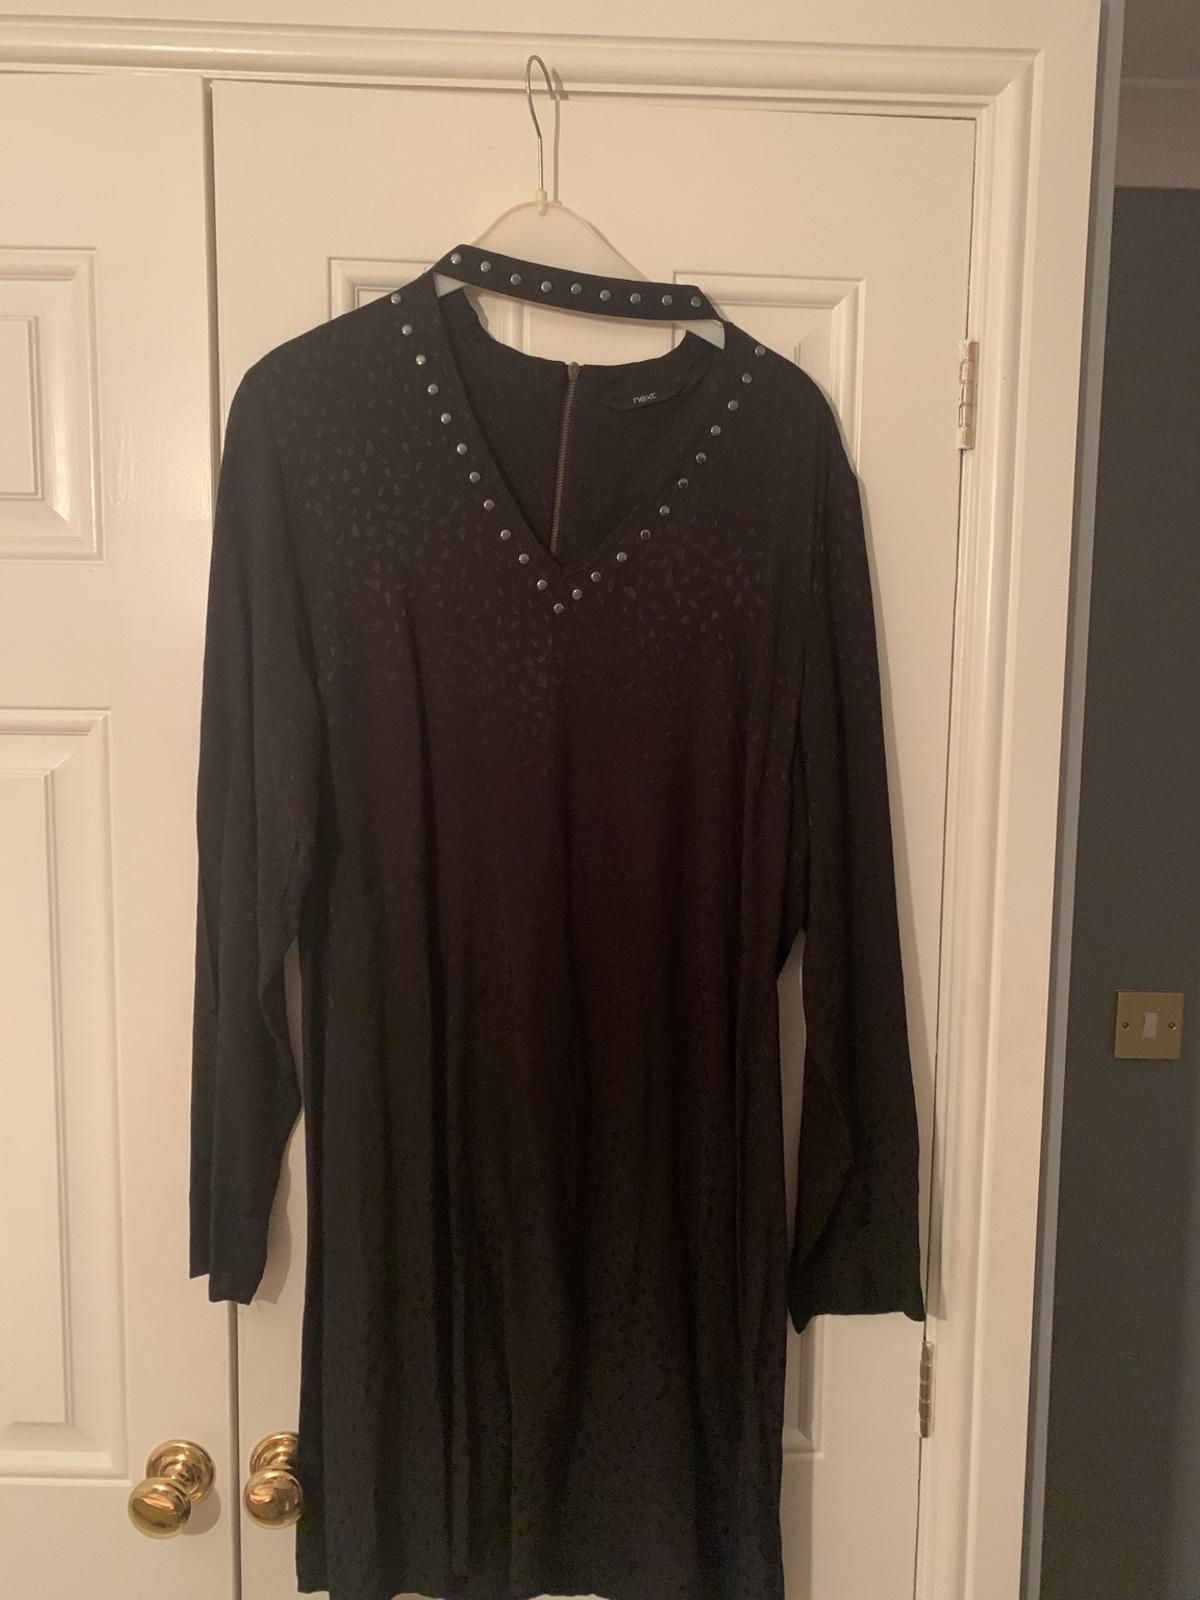 Next dress.  16  Brand new with tags